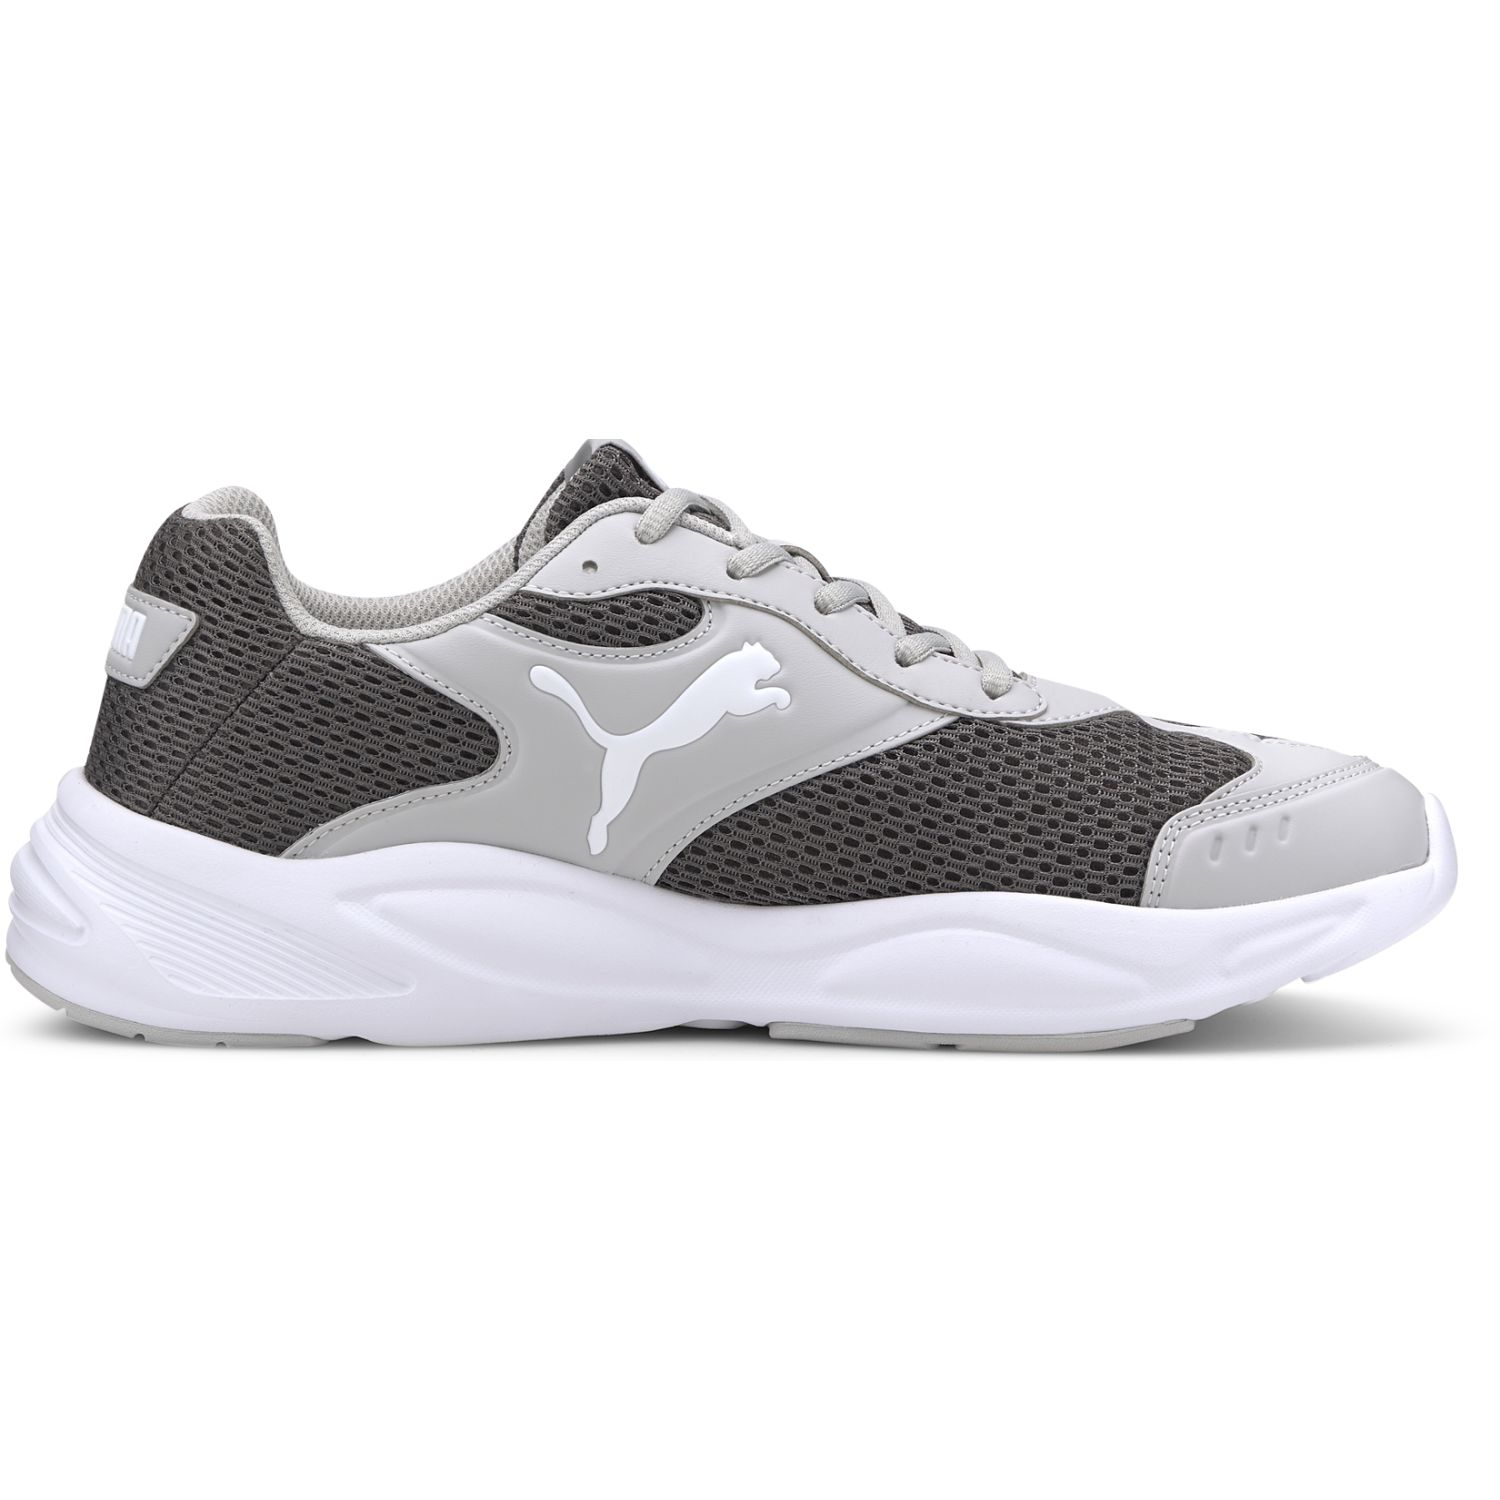 Puma 90s Runner Plateado Walking